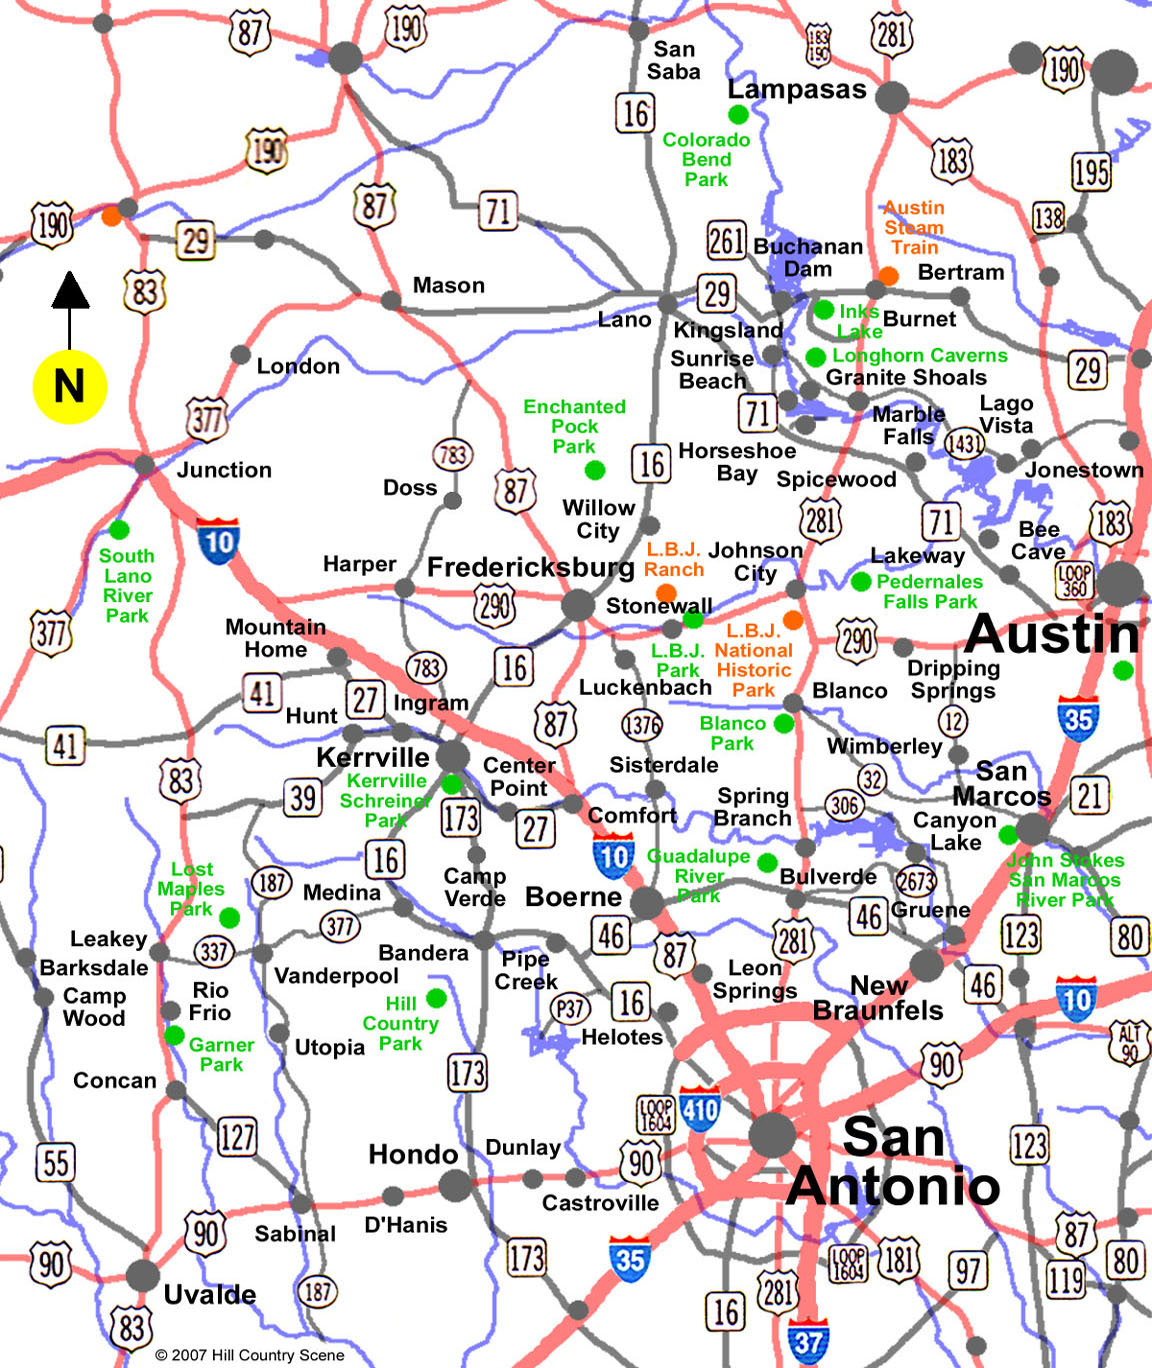 Map Of The Hill Country Texas My Blog - Texas towns map